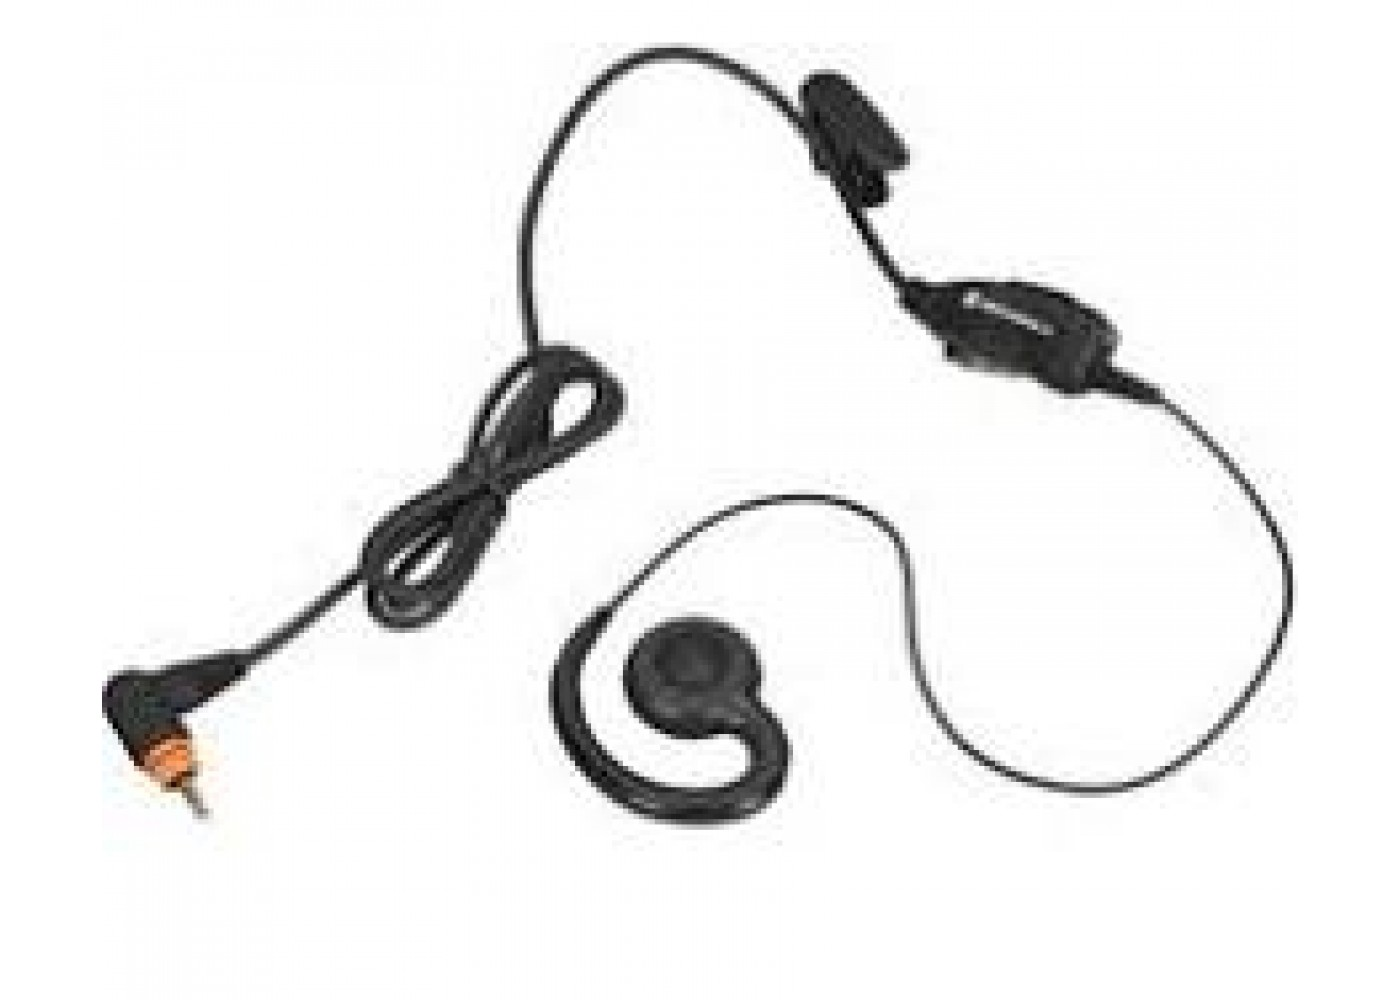 Motorola Pmln7189 Swivel Earpiece Inline Mic Ptt Sl300 as well Index moreover Wireless Pacific Smart Heavy Duty Headset For Motorola Clp Two Way Radio Wear With Or Without Hard Hat also 32623371085 furthermore 813276 1989078714. on two way radio earpiece microphone